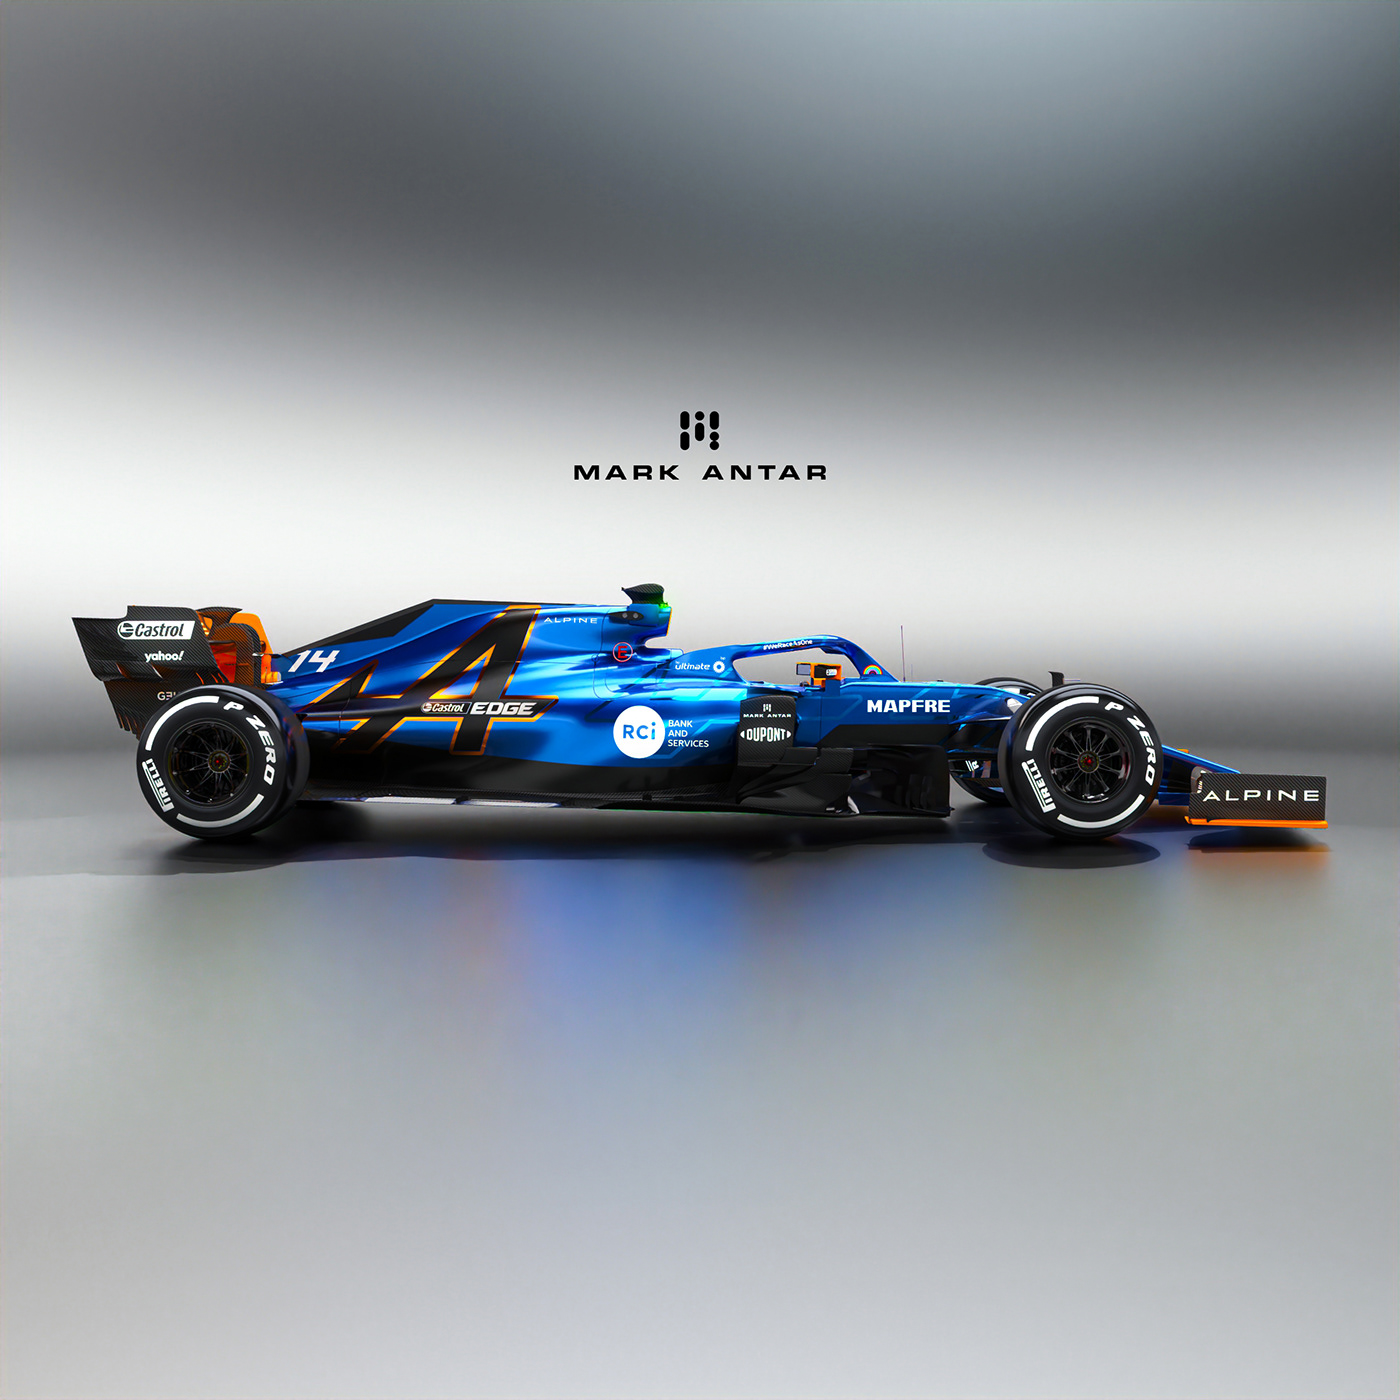 2021 Alpine F1 livery concepts on Behance